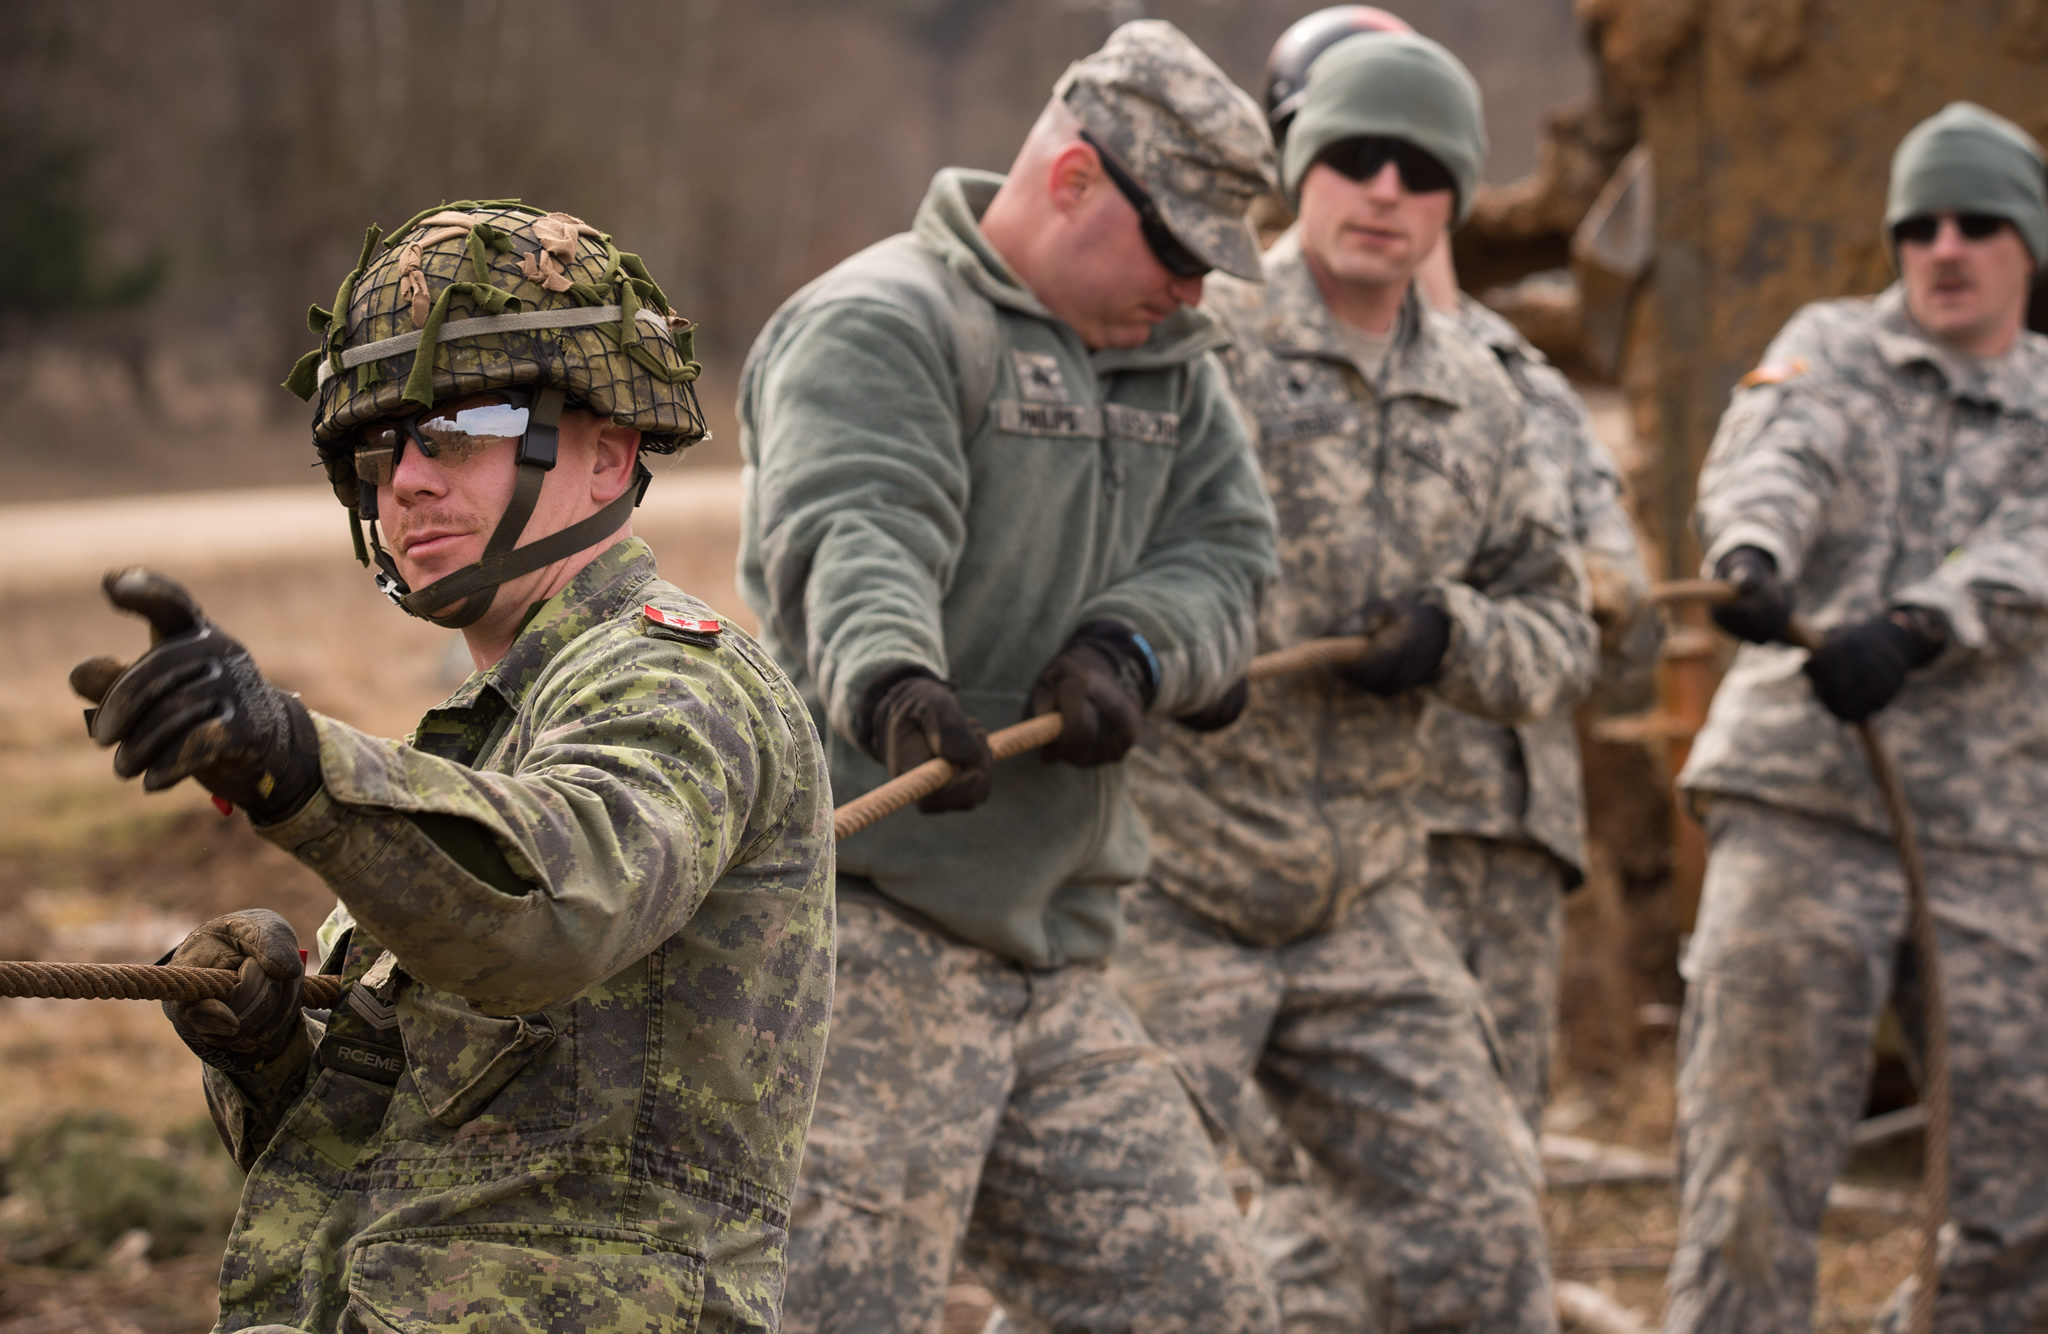 Canadian and American maintenance members practice their recovery skills in the Hohenfels Training Area on Exercise ALLIED SPIRIT VI during Operation REASSURANCE on March 14, 2017. (Photo: MCpl Jennifer Kusche, Canadian Forces Combat Camera)